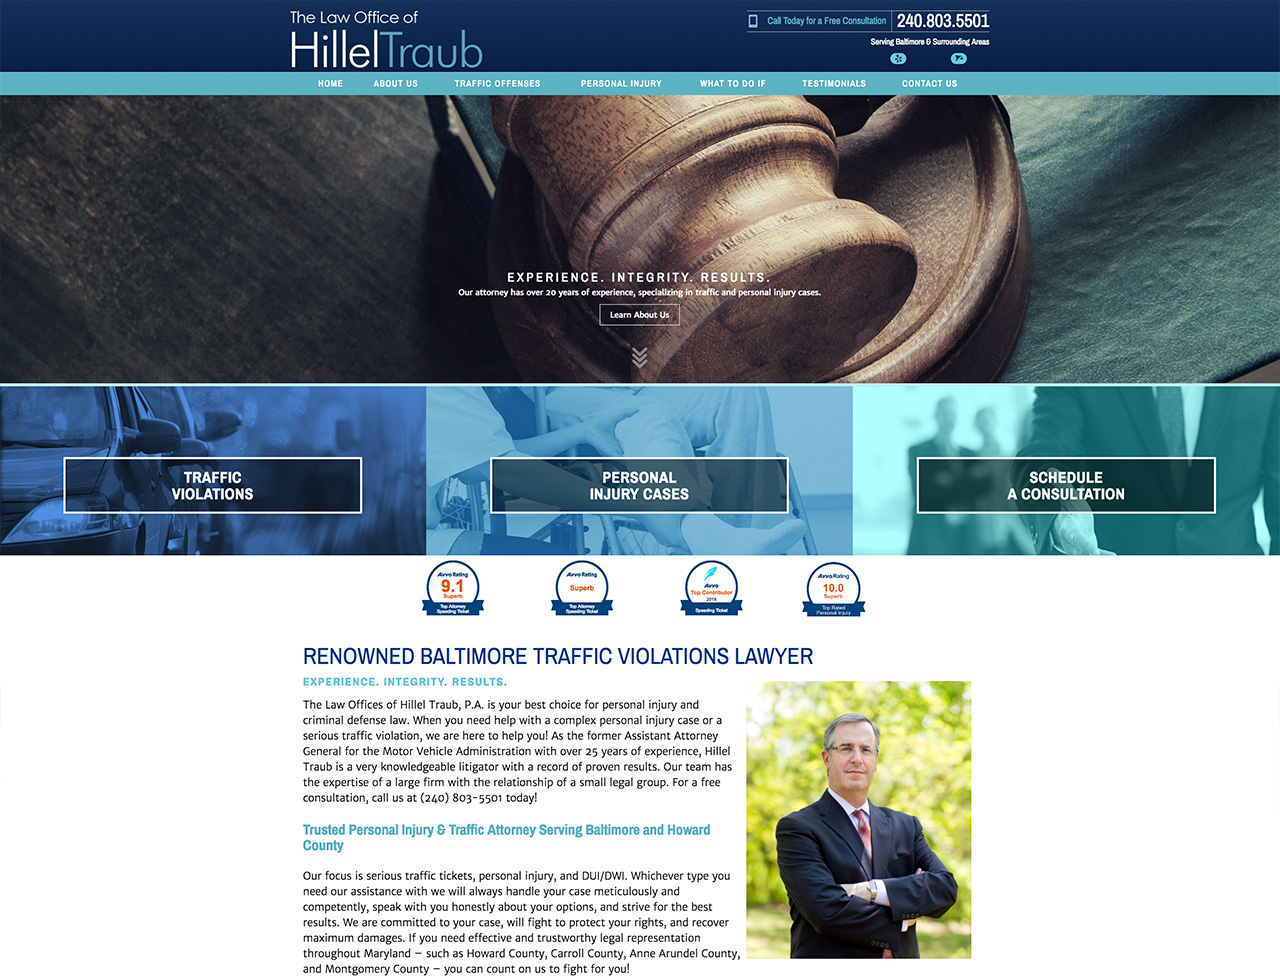 The Law Office of Hillel Traub, Desktop View